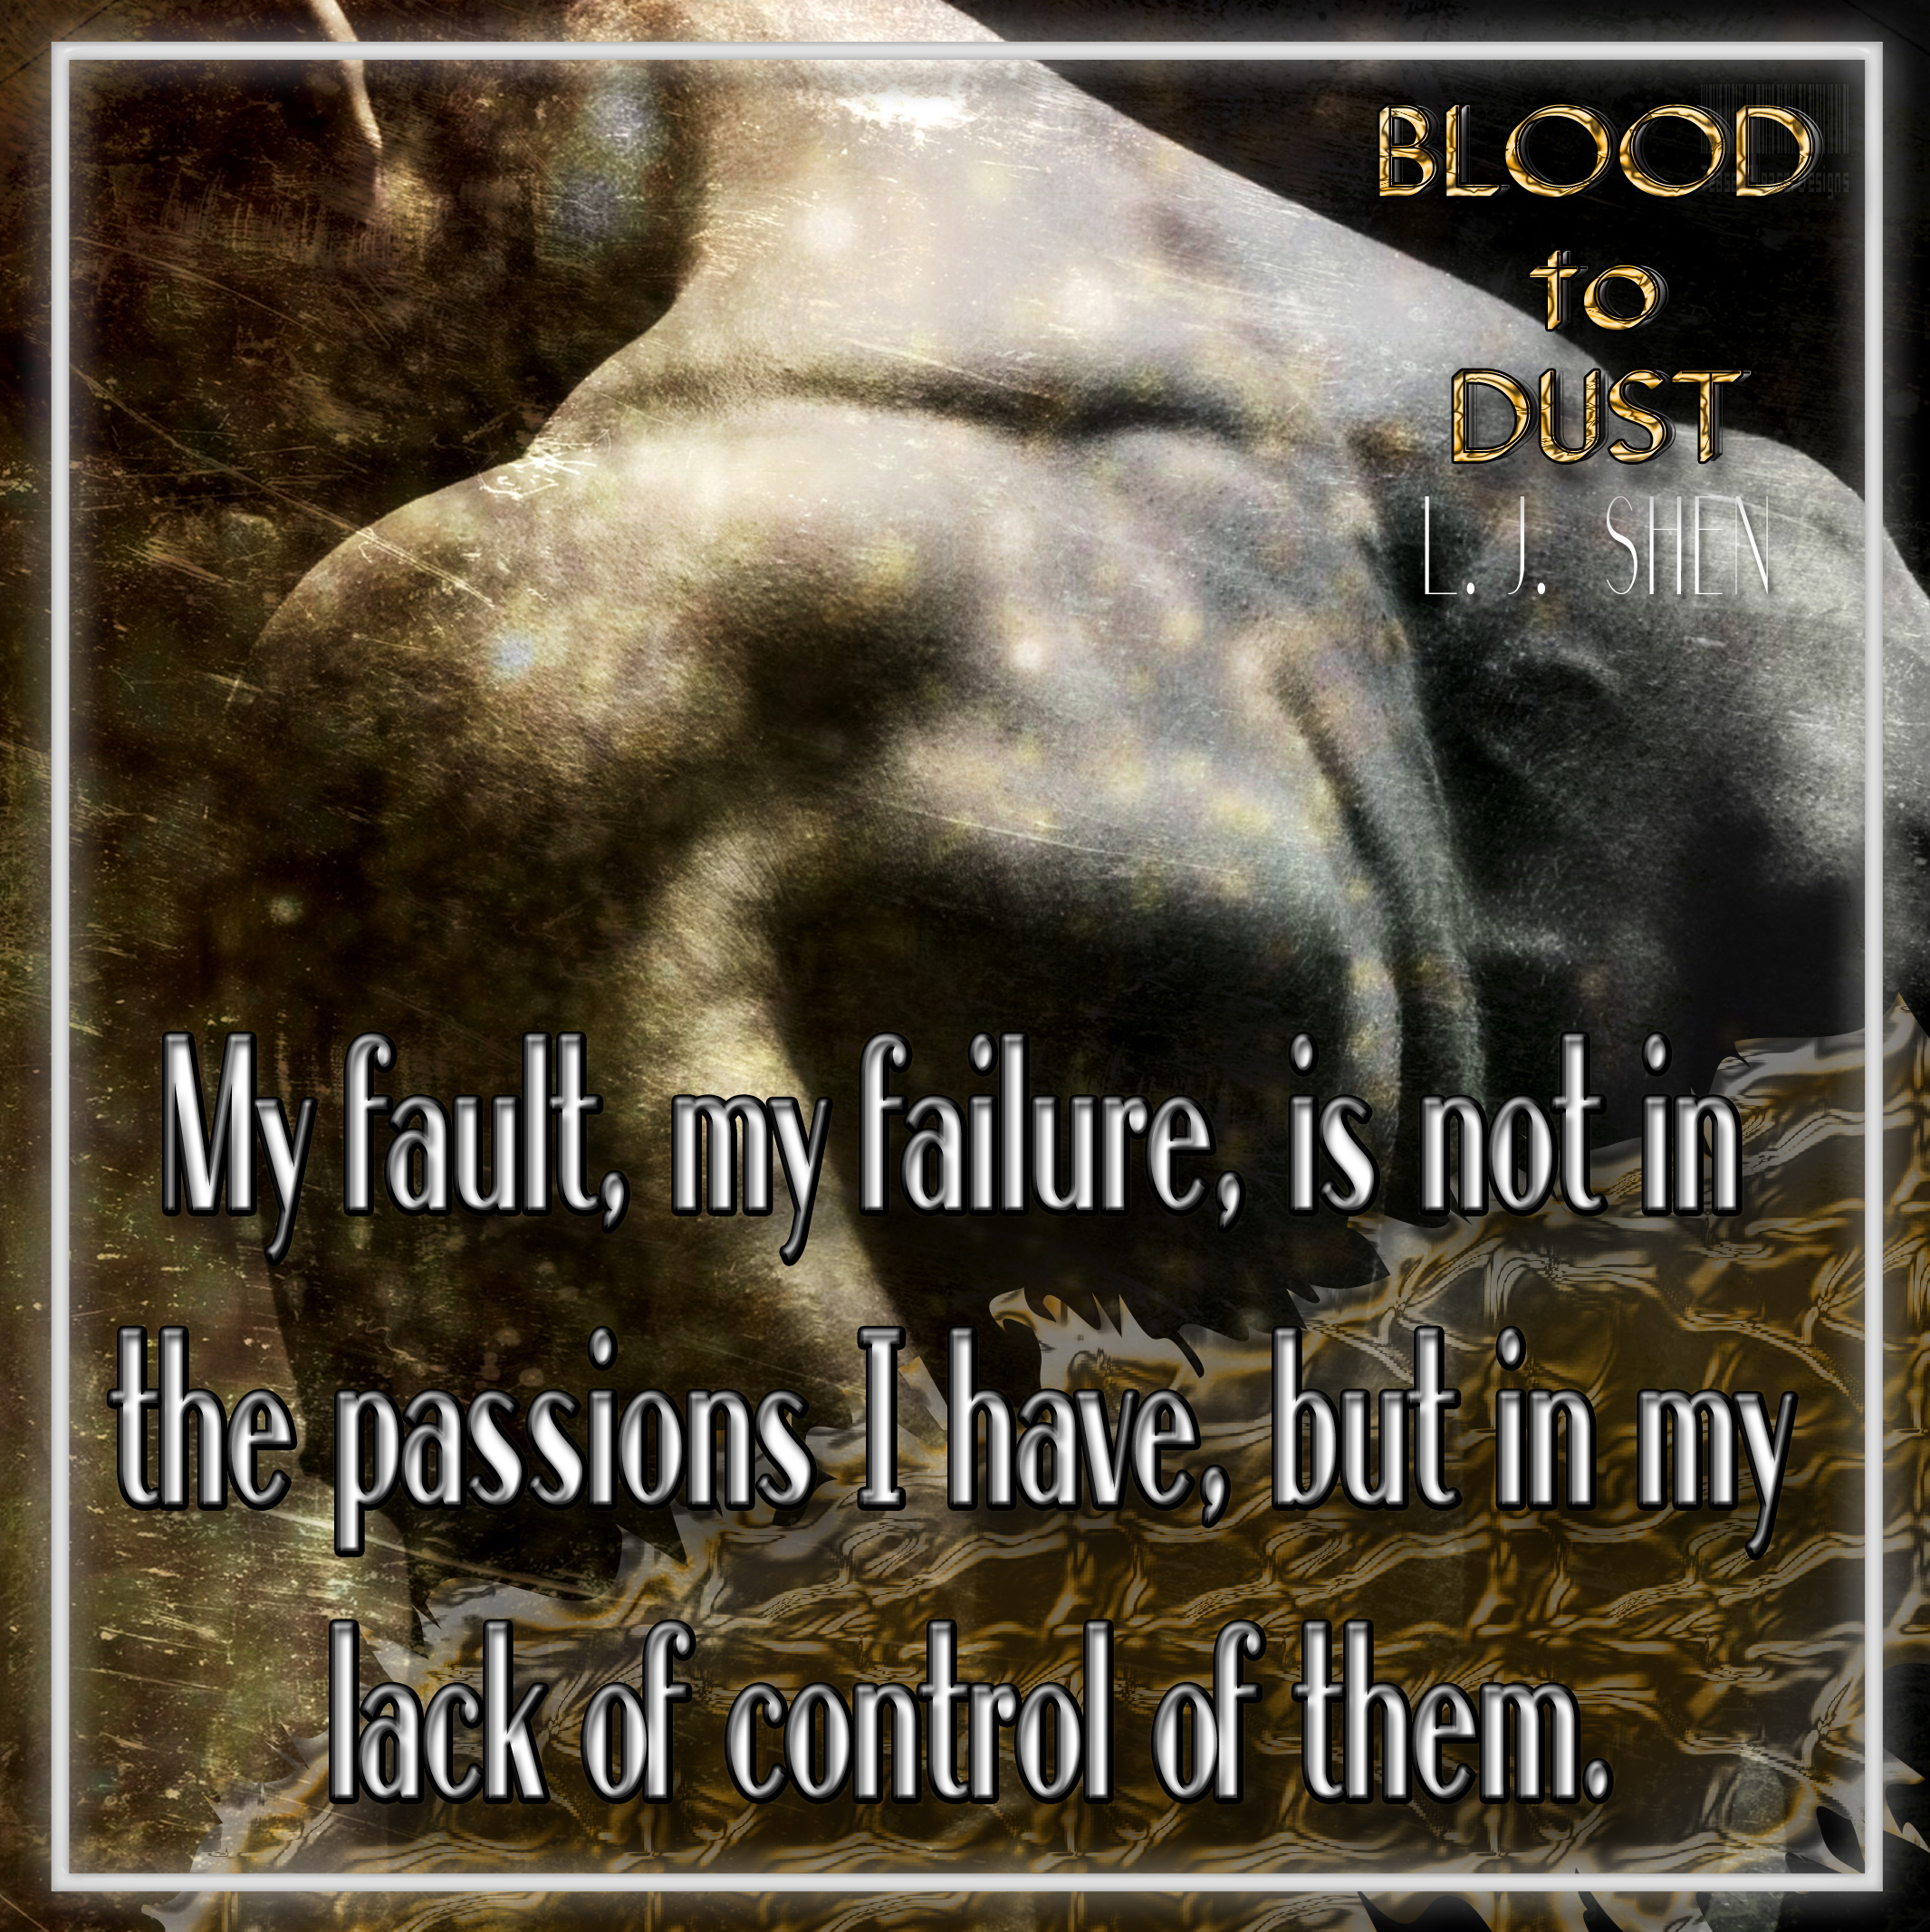 Blood to Dust (LJ Shen)